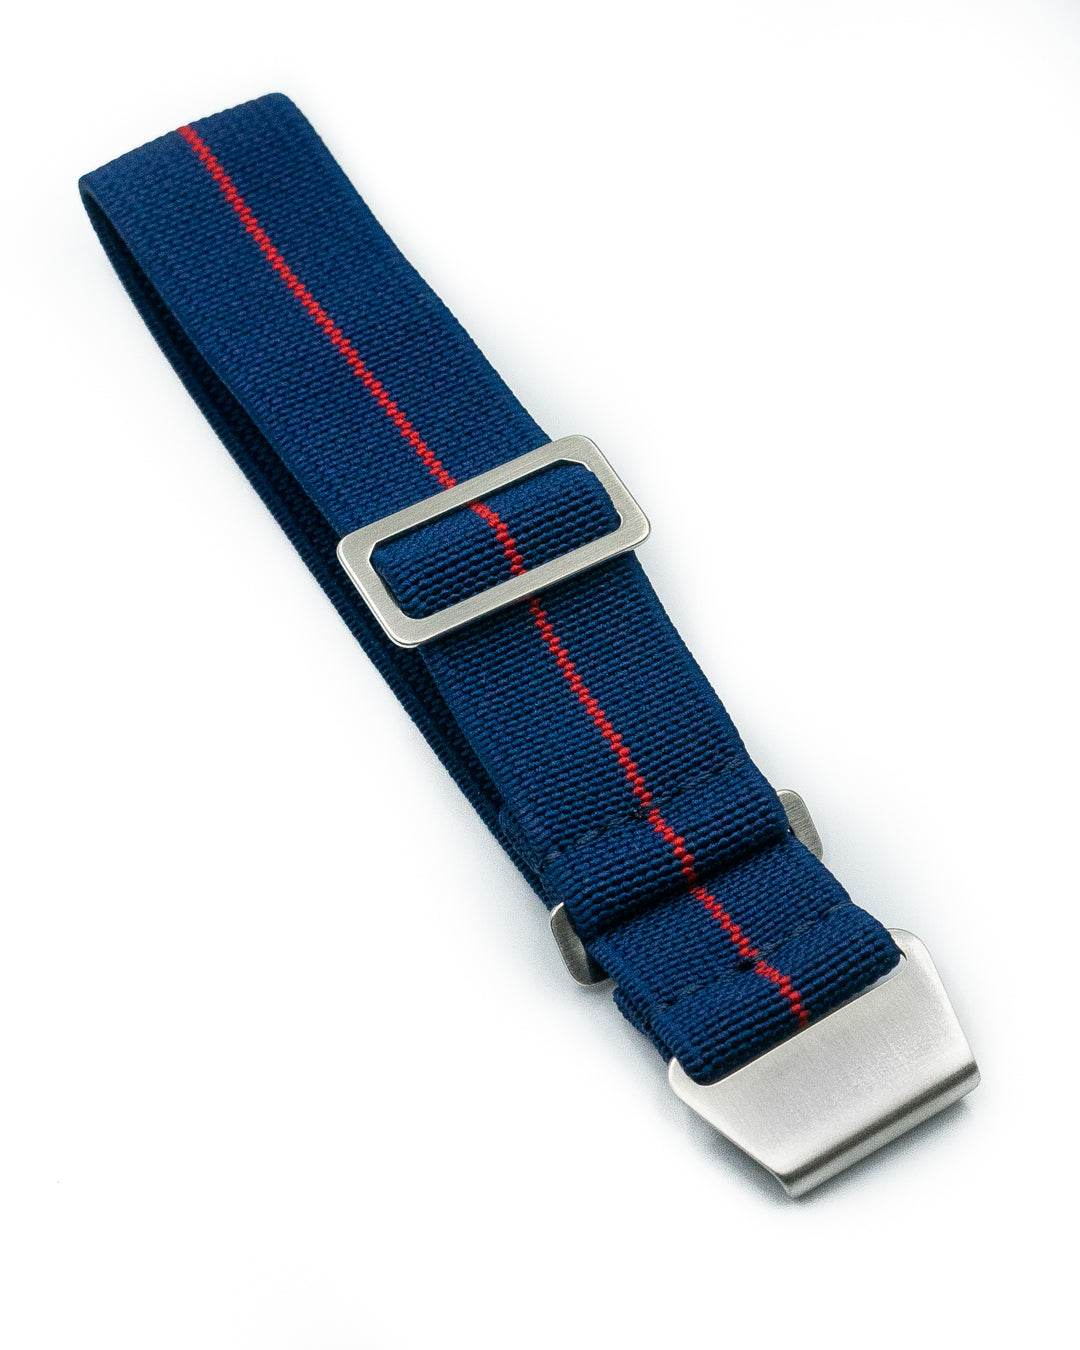 PARA Elastic - Navy Blue with Red Centerline